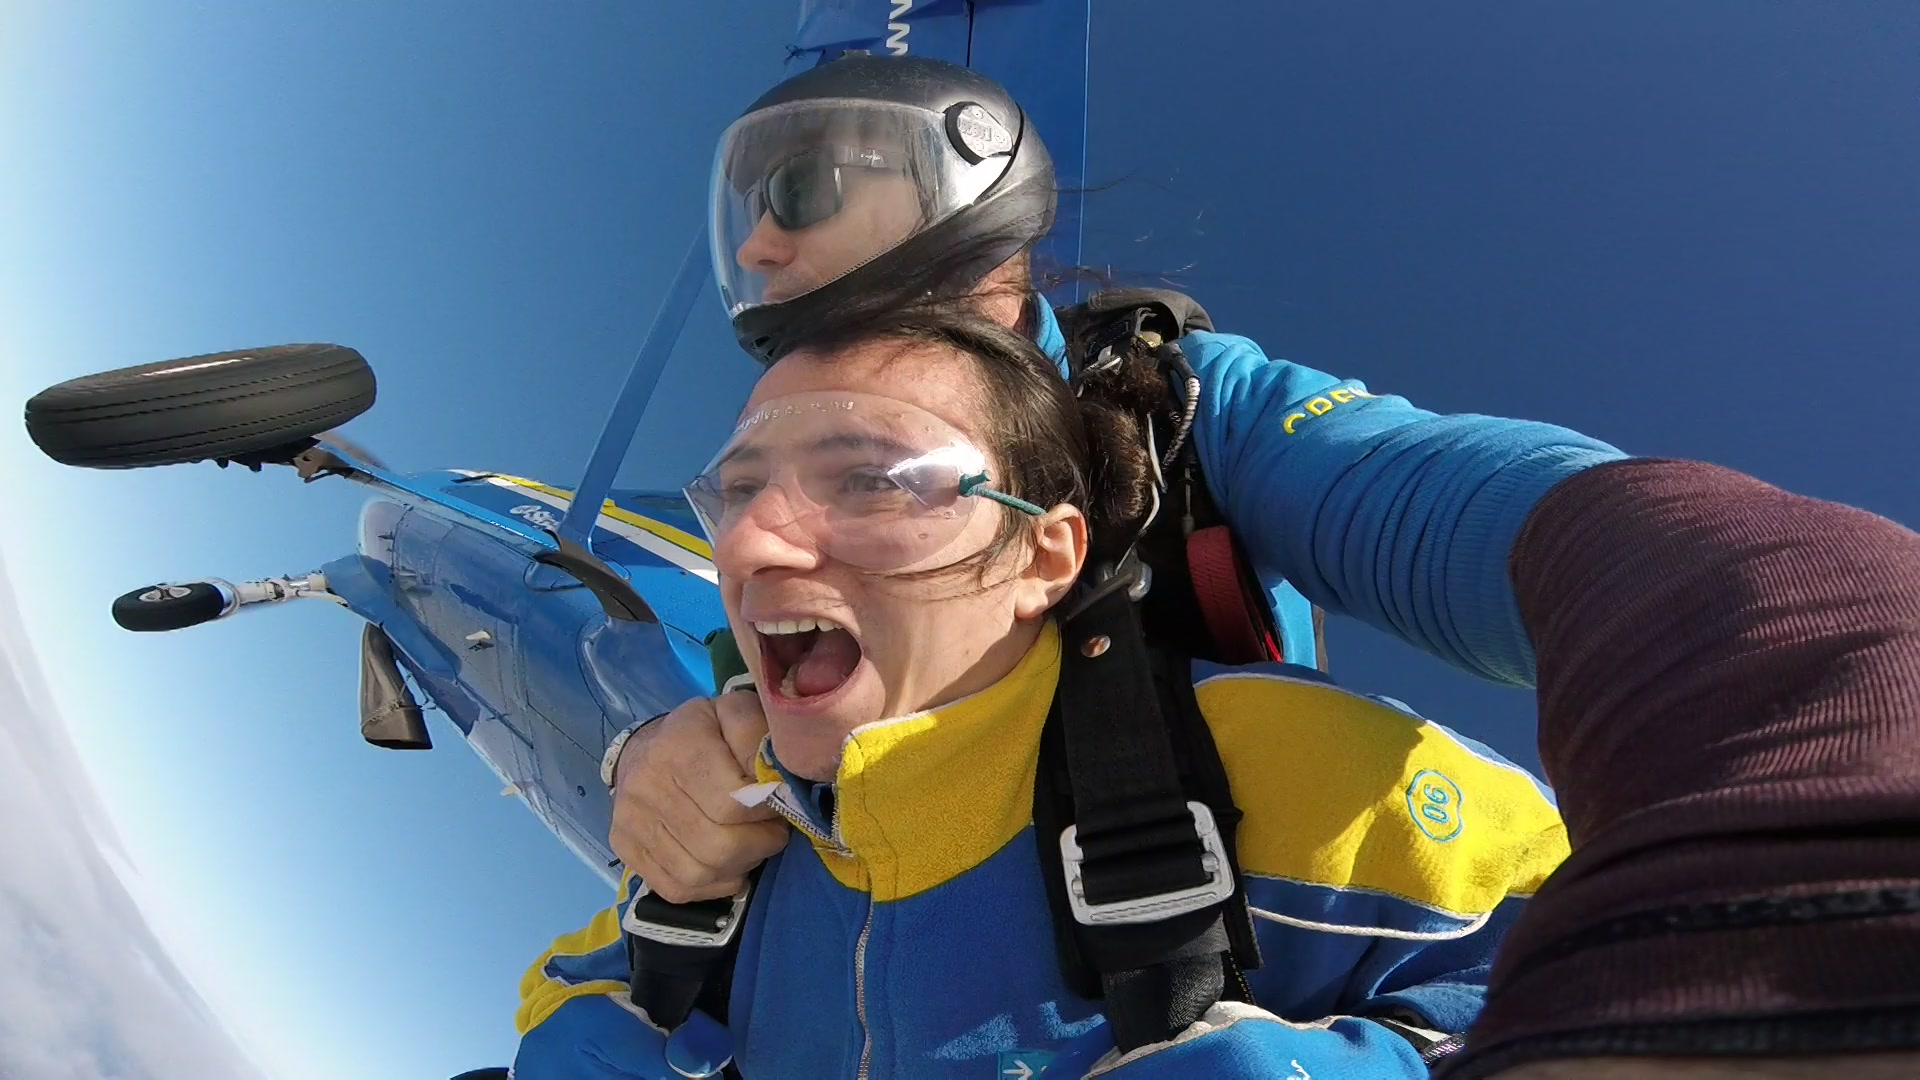 Skydiving with Sunday Avenue